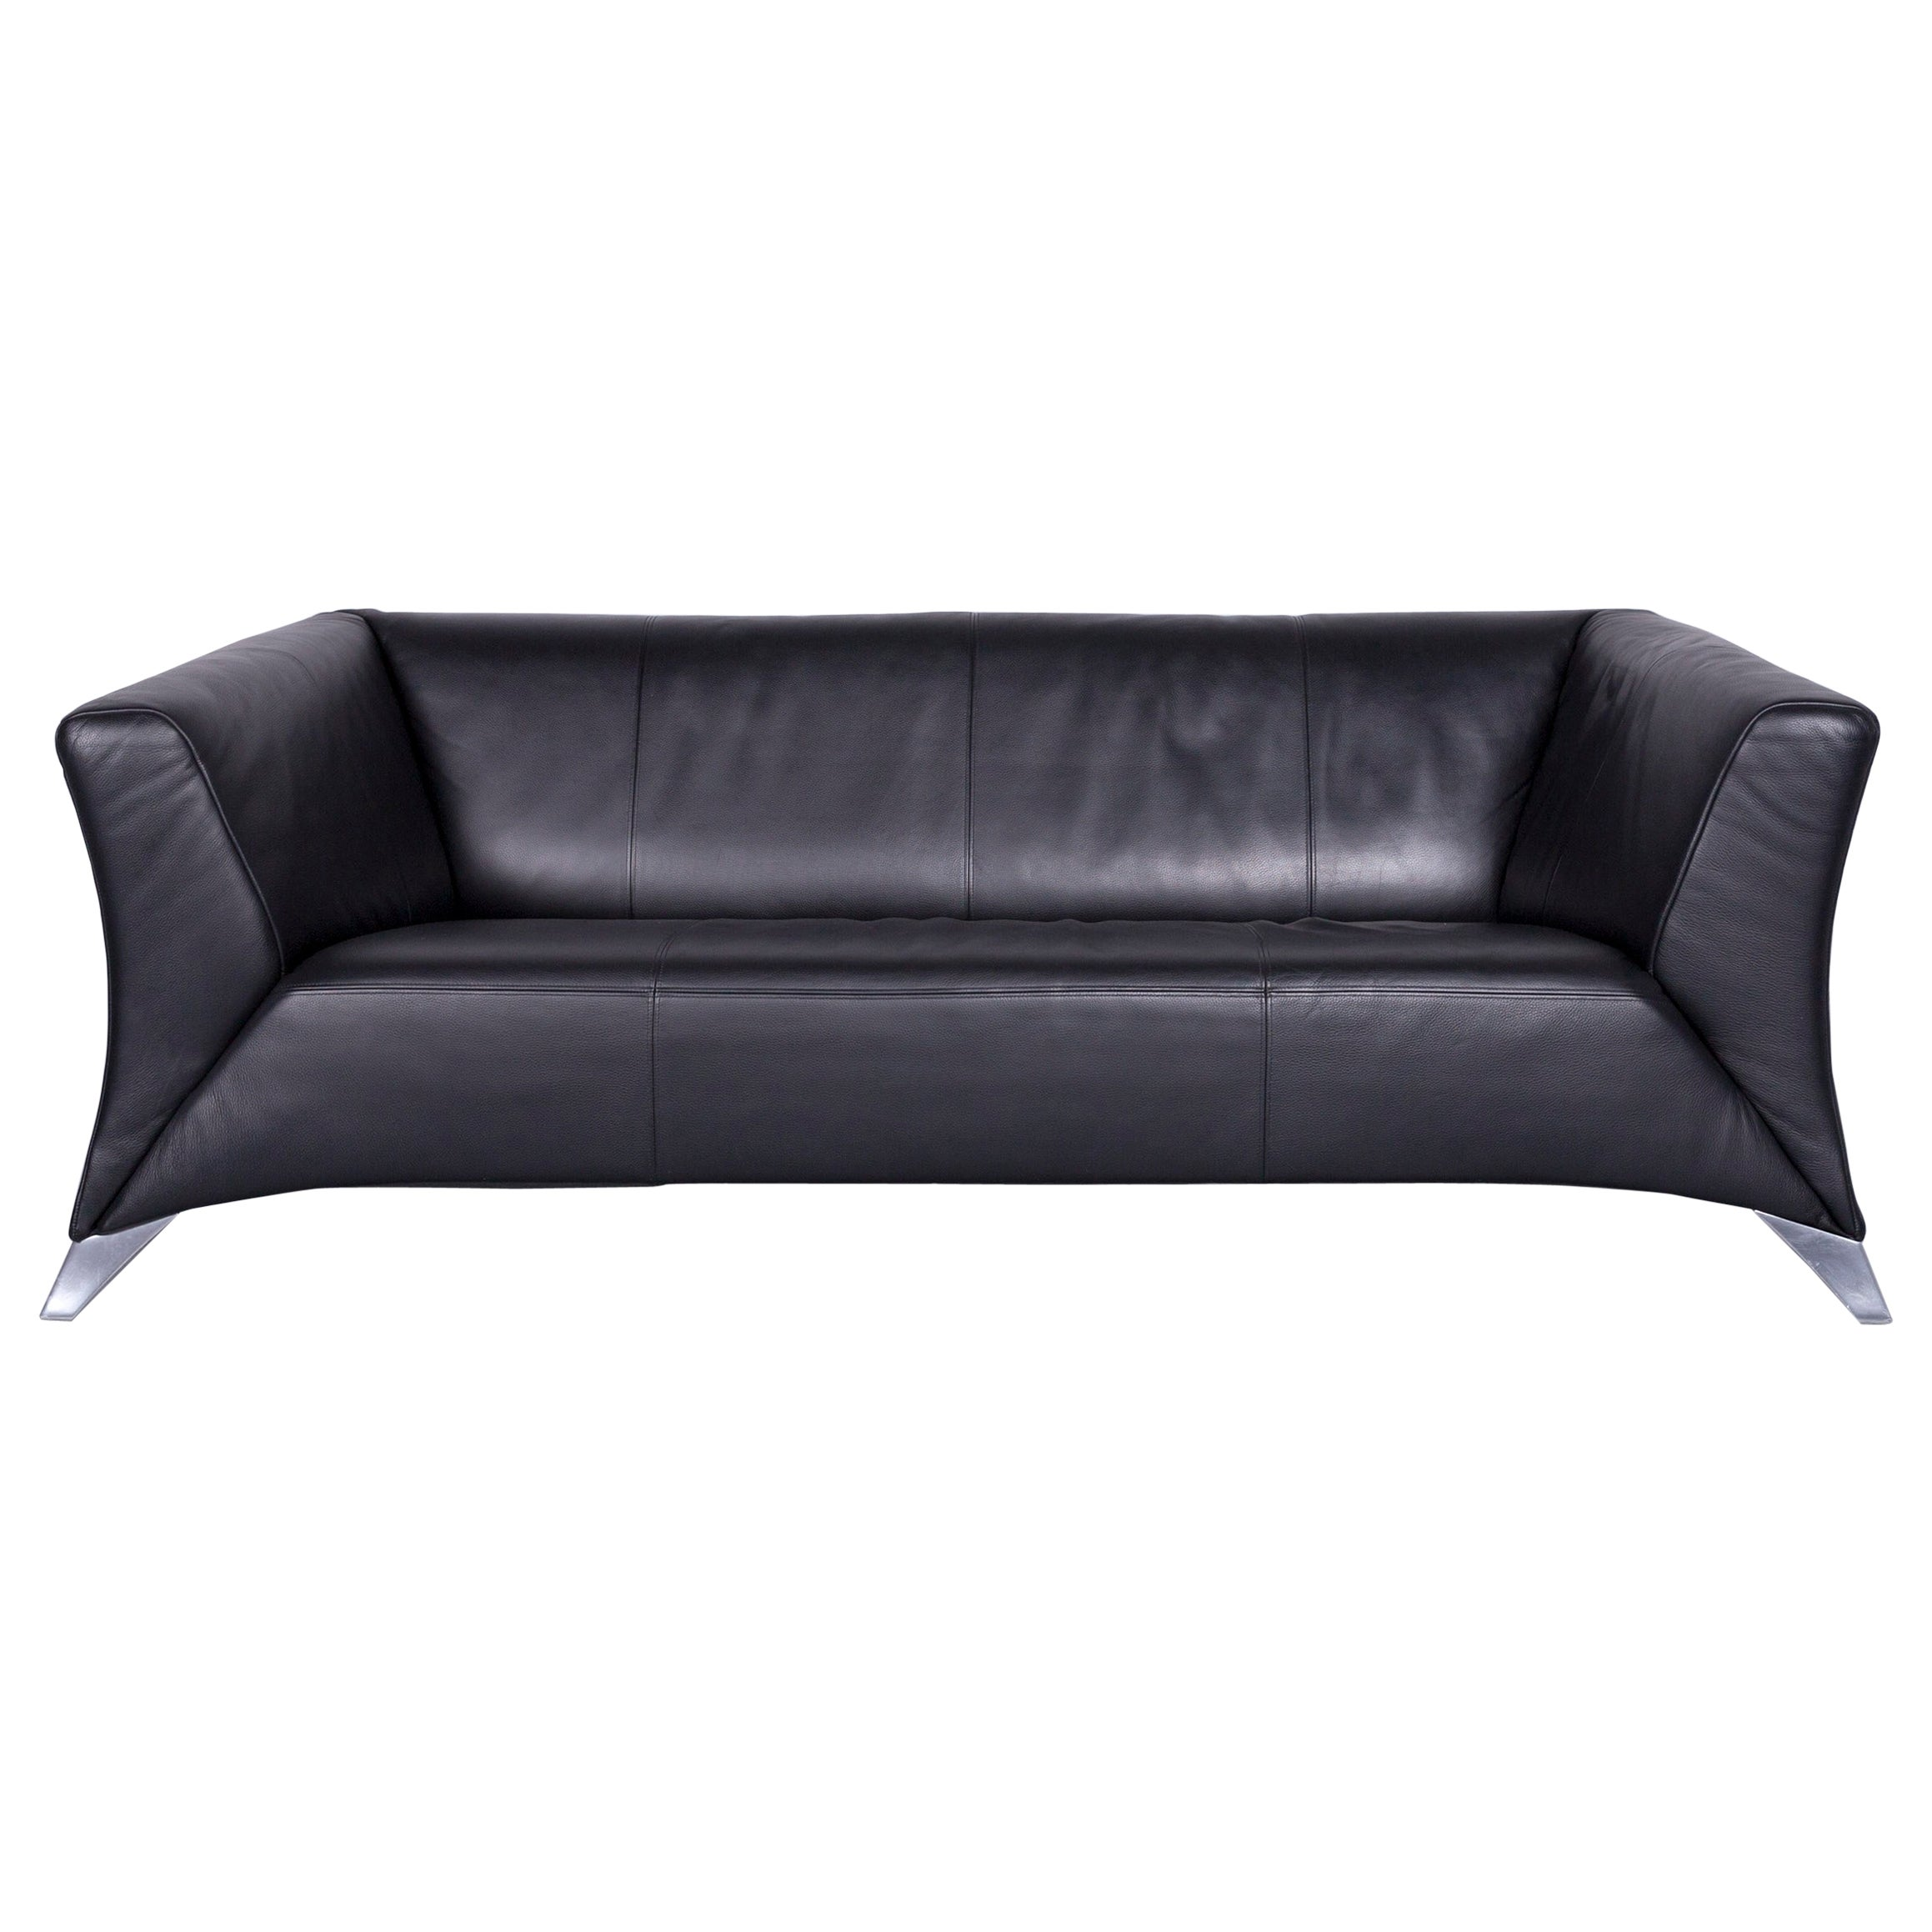 Rolf Benz Couch Rolf Benz 322 Designer Sofa Black Two Seat Leather Modern Couch